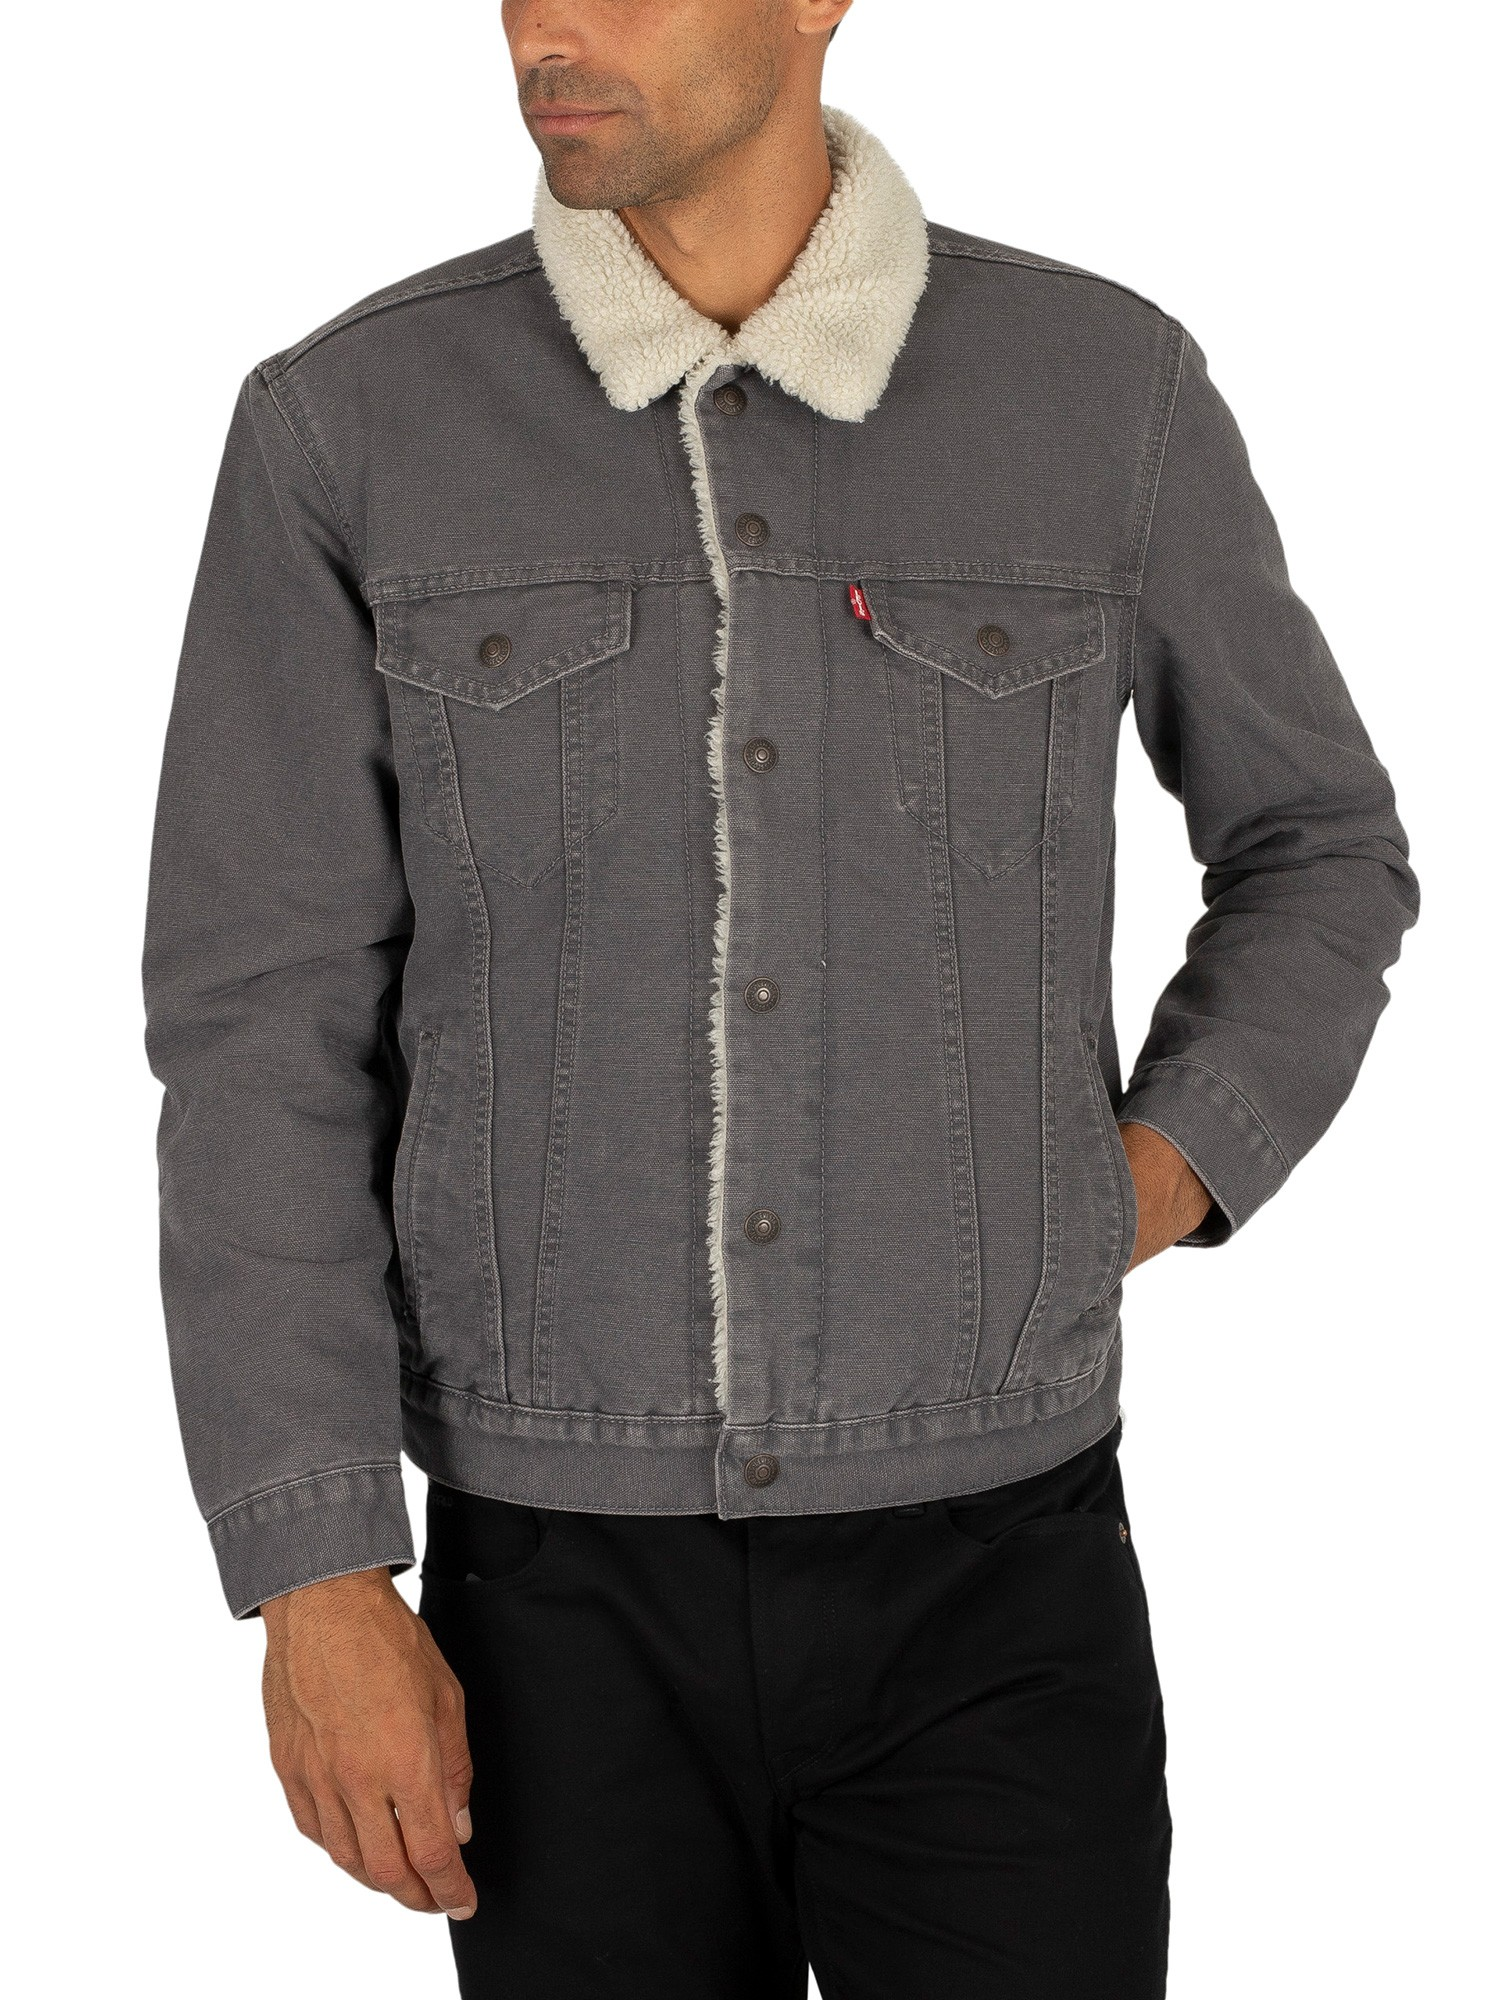 Levi's Type 3 Sherpa Trucker Jacket - Magnet Canvas